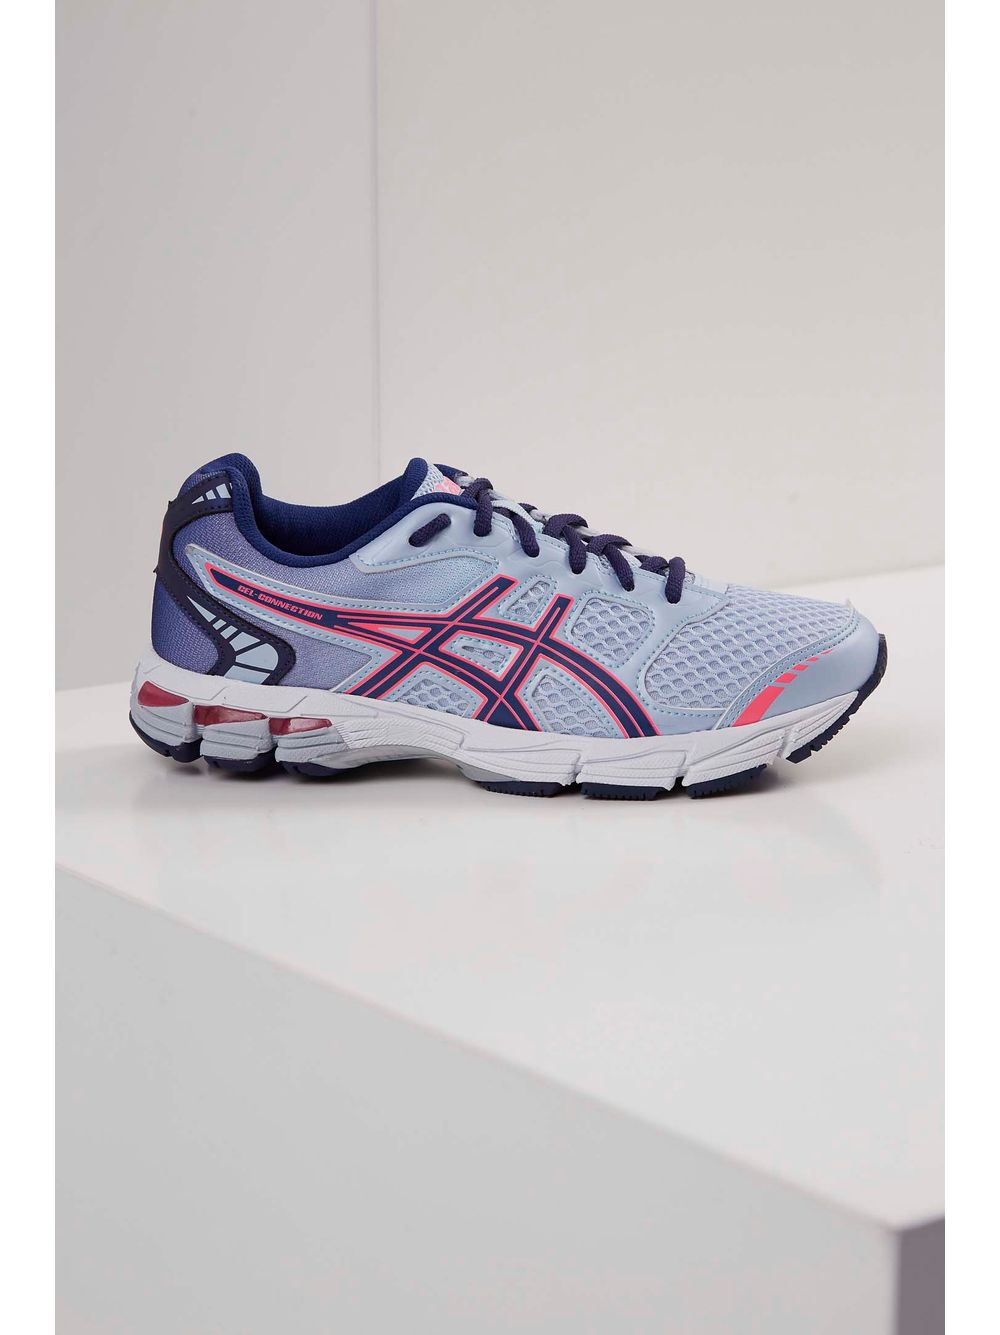 ec66918f25e Tênis Corrida Asics Gel-Connection Azul - pittol